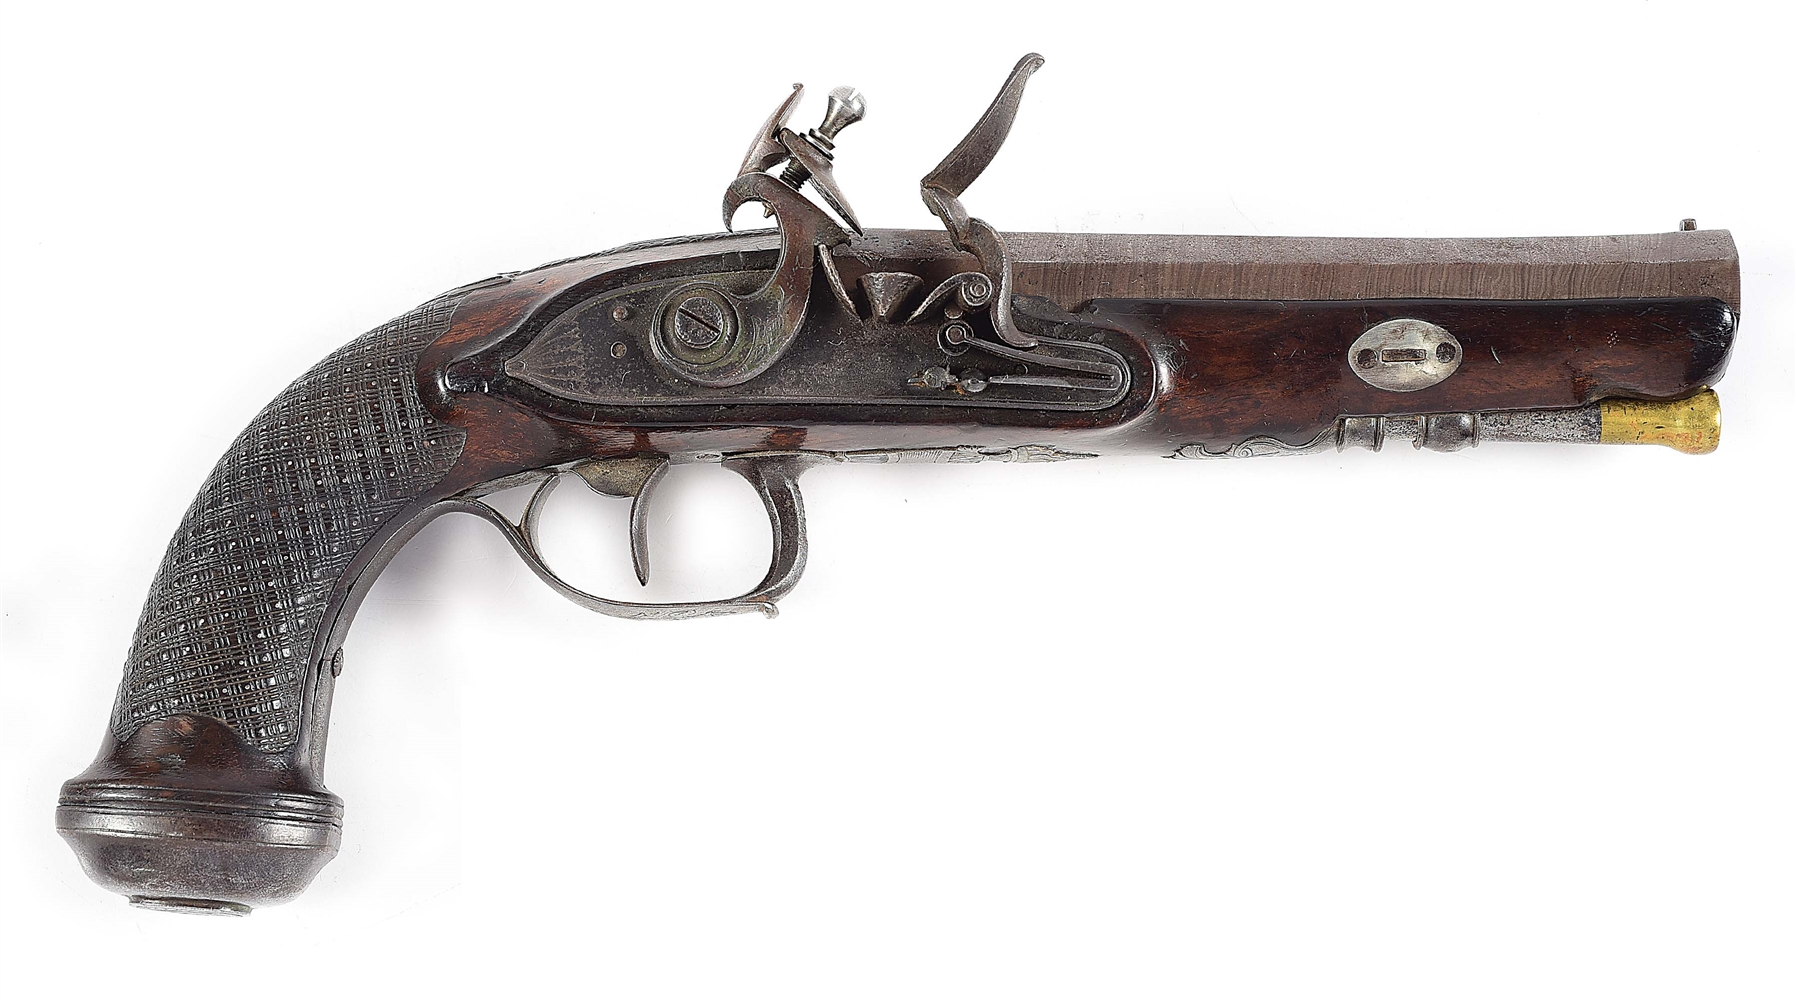 (A) CONTINENTAL, LIKELY BELGIAN, .72 CALIBER FLINTLOCK PISTOL.